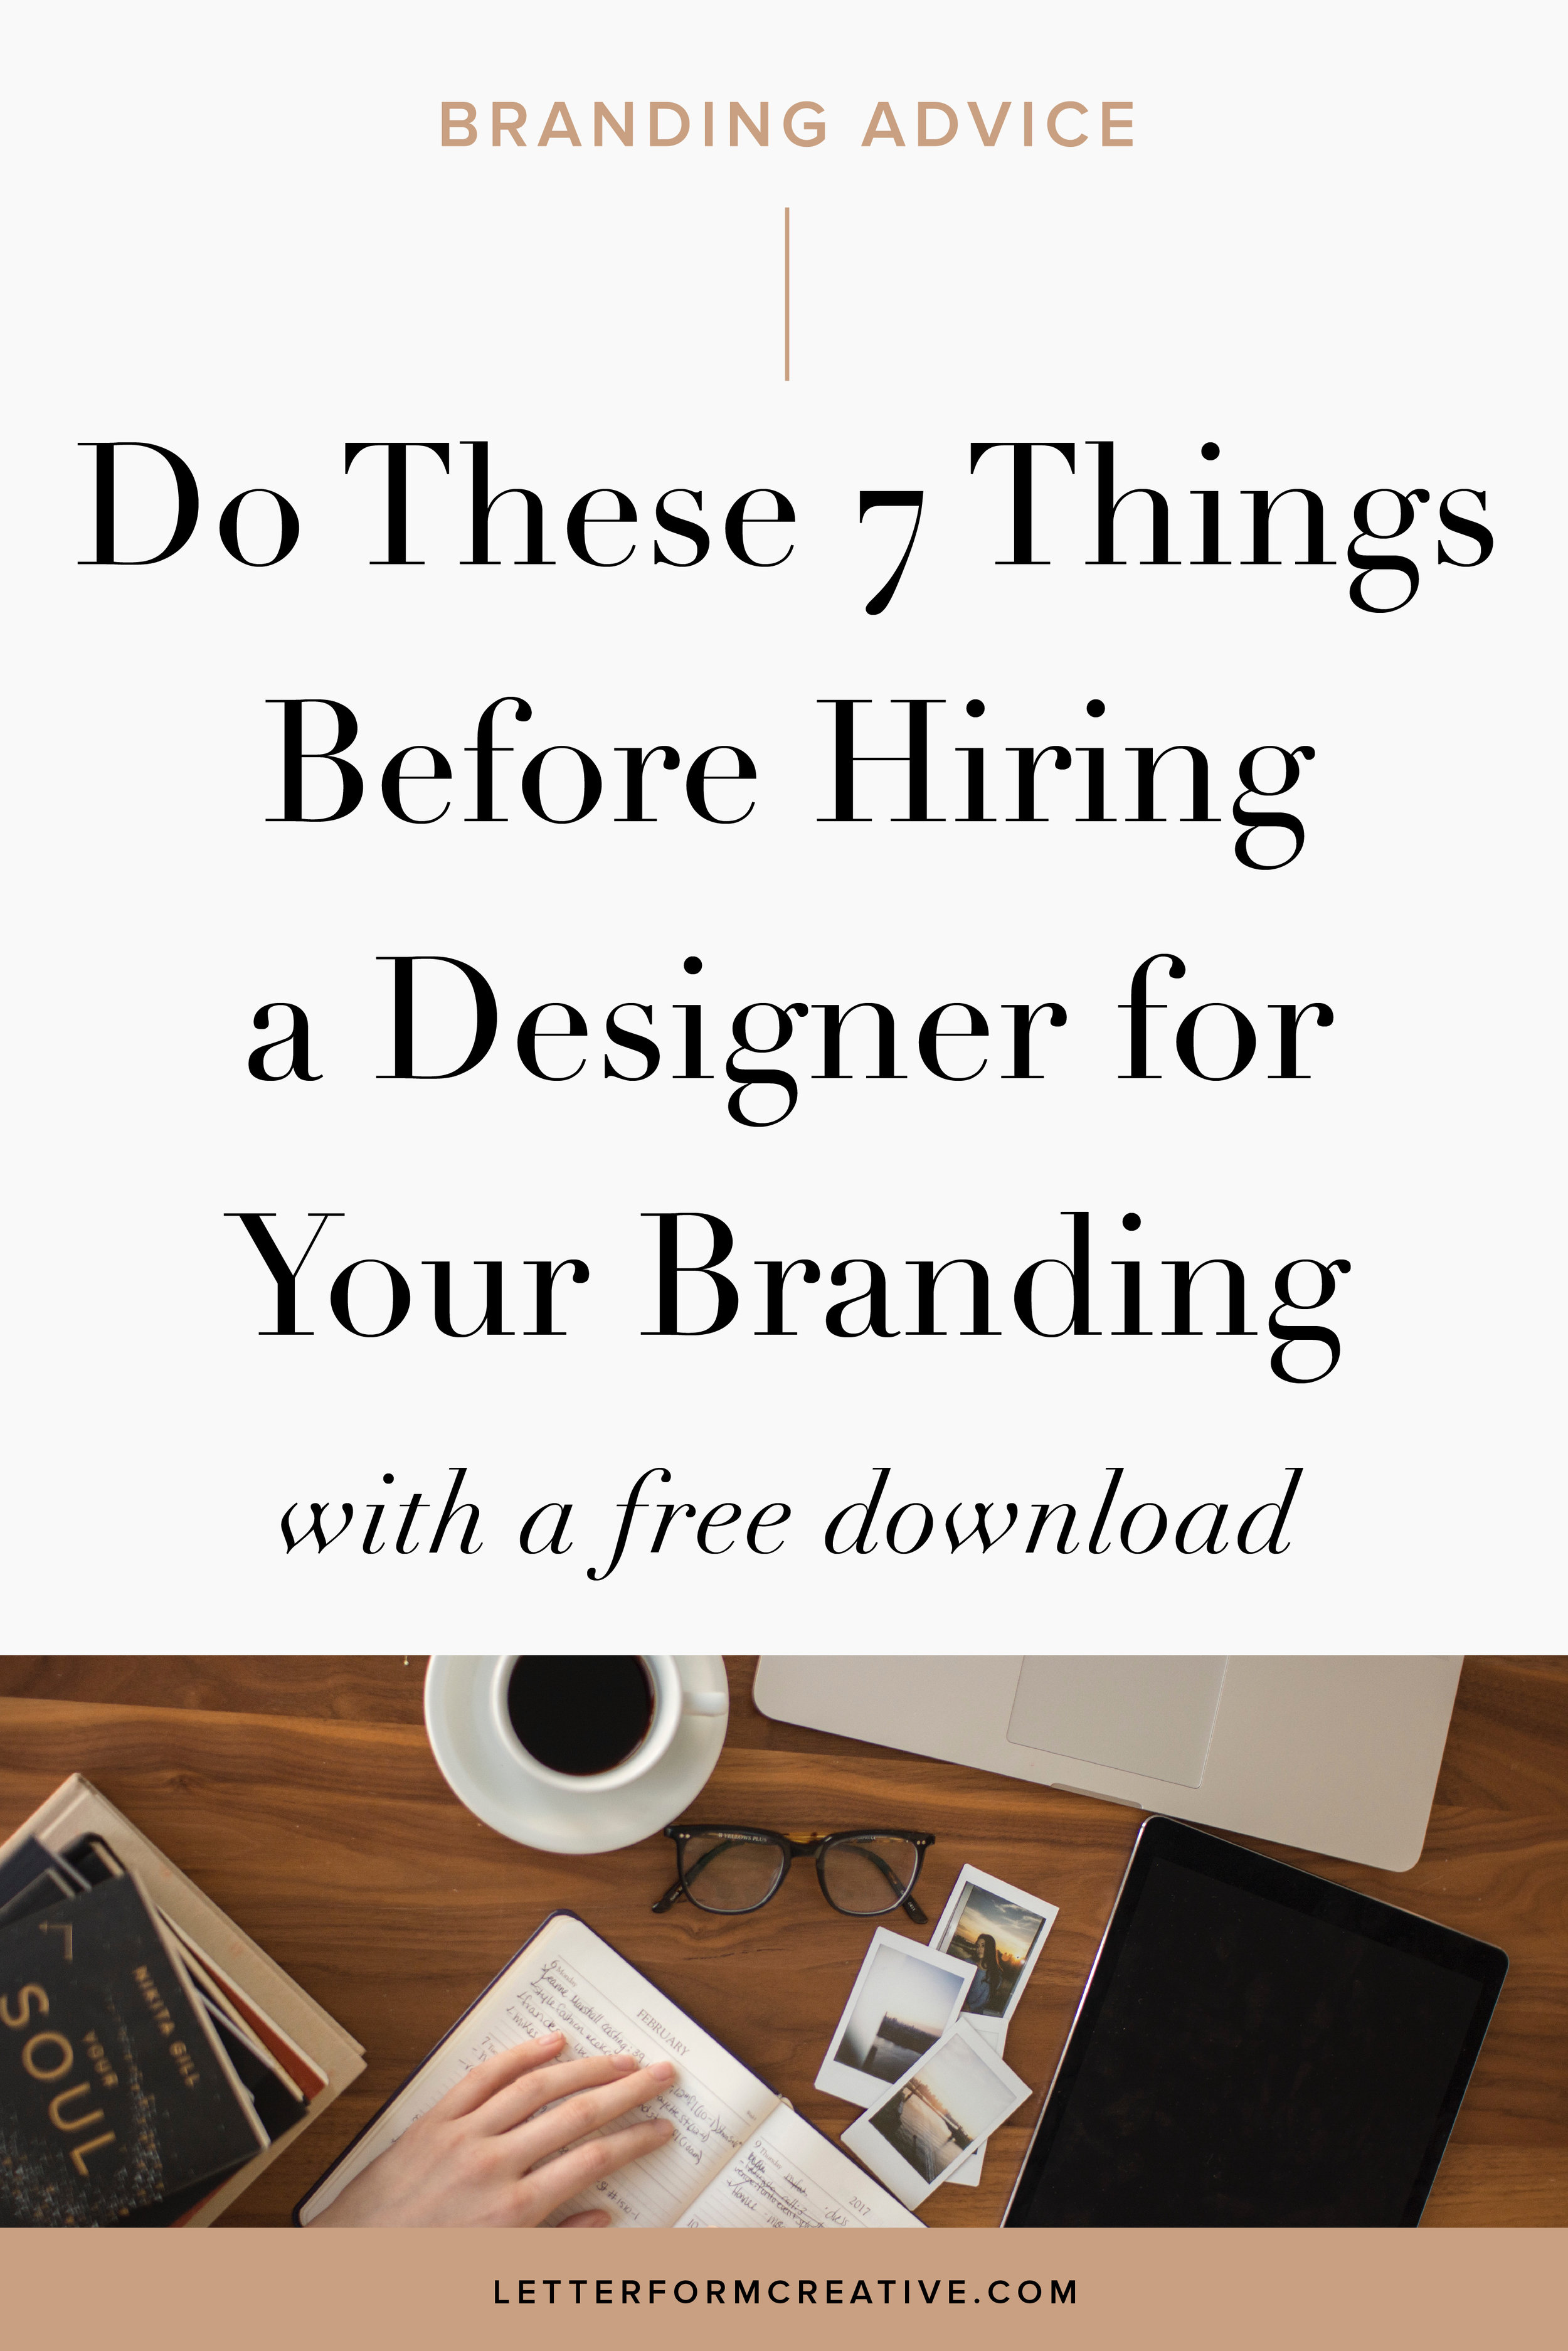 If you're considering taking the leap from doing your branding yourself to hiring a professional designer for your brand identity, you must read this blog post! IT is full of inspiration and ideas to help prepare you for working with a creative designer for your branding and website. Hiring a professional designer doesn't just mean you're logo will look great, it will truly benefit your entire business and give you the personal confidence you need!